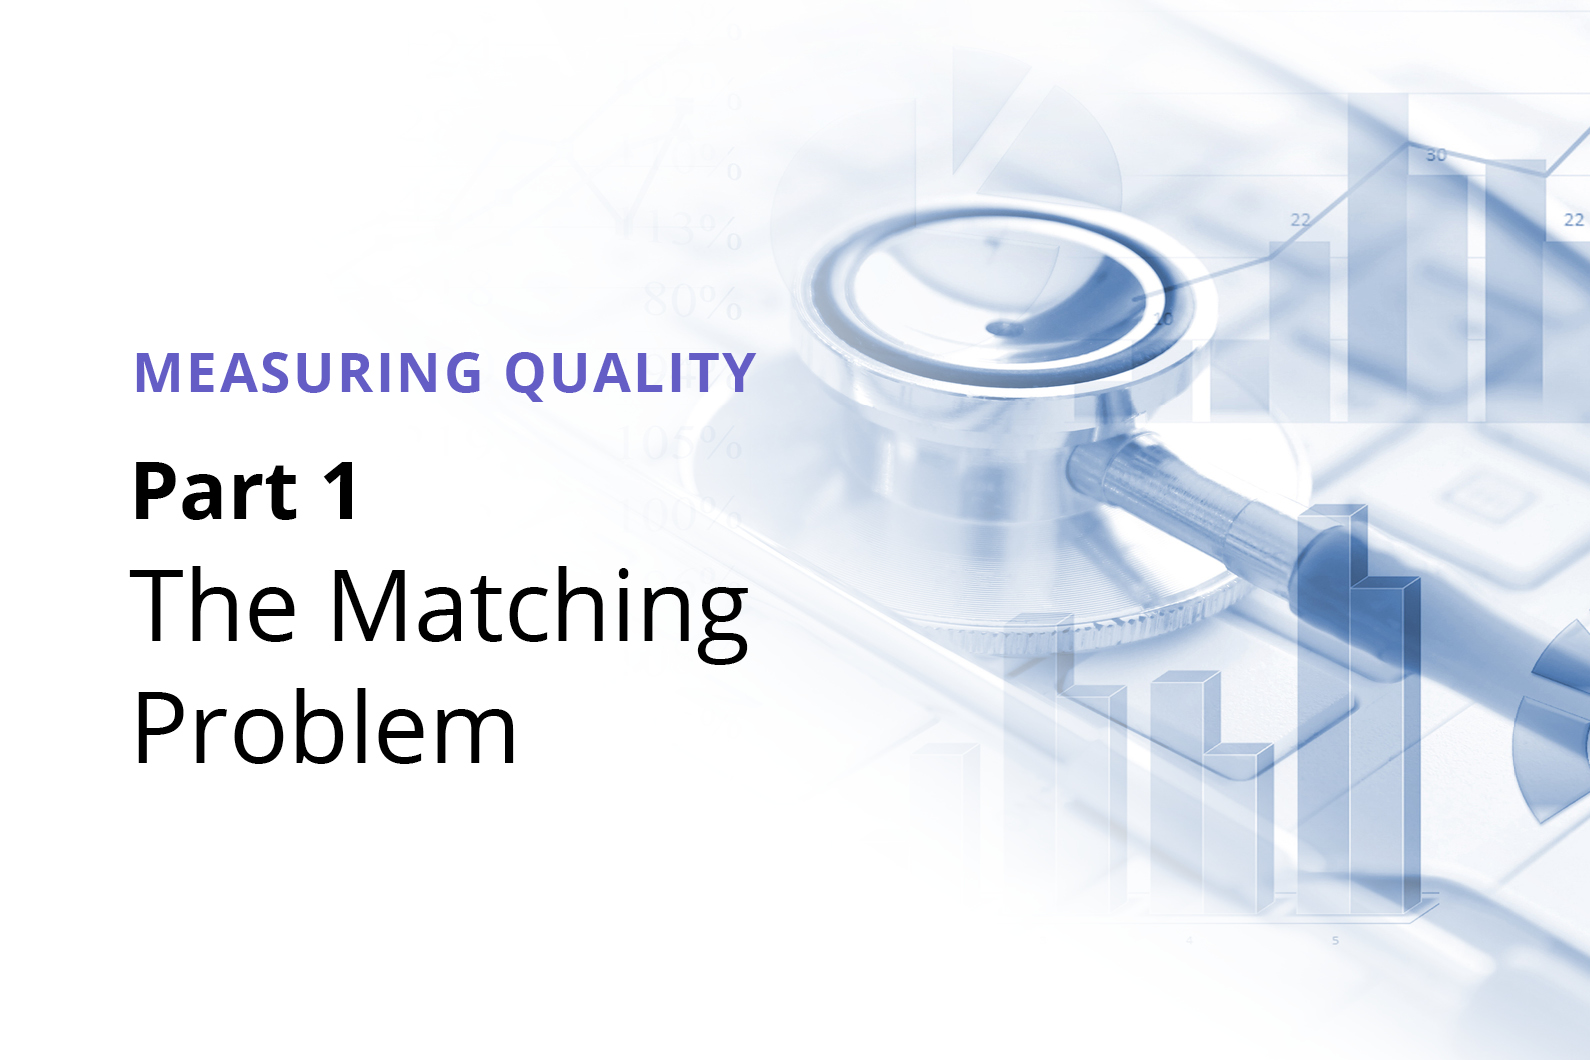 Graphic: The matching problem